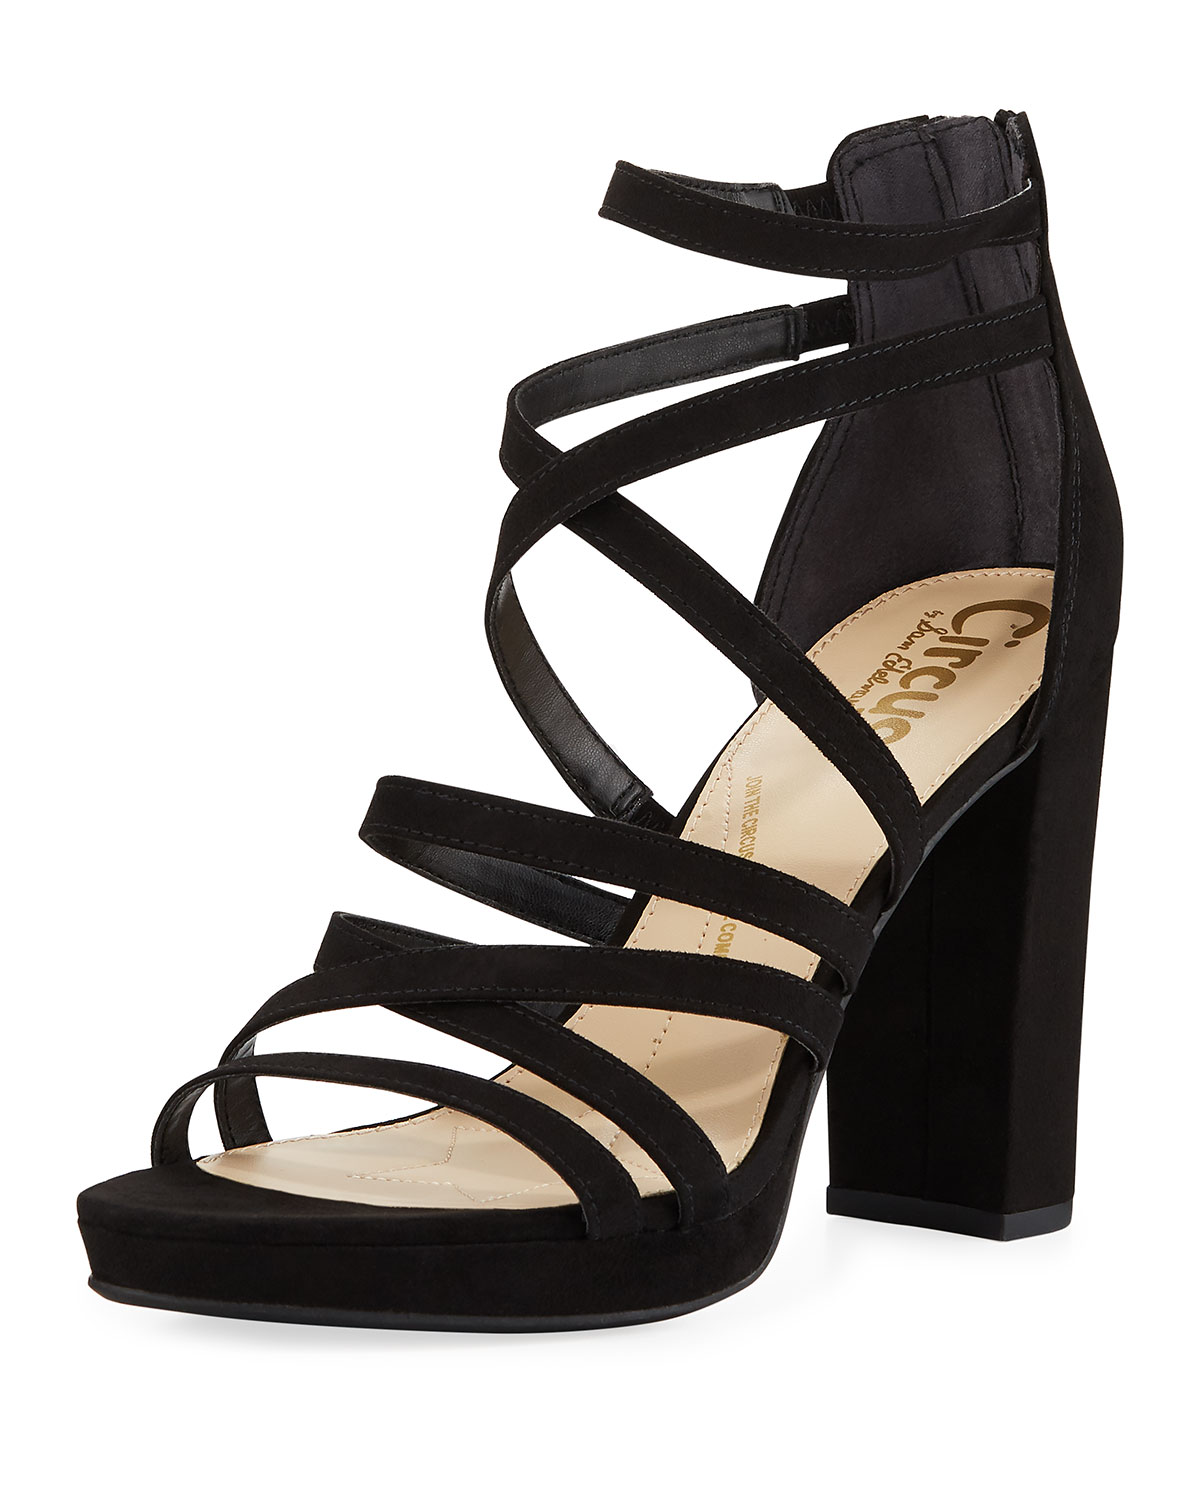 94d9a2e90 Circus By Sam Edelman Adele High-Heel Strappy Sandals In Black ...